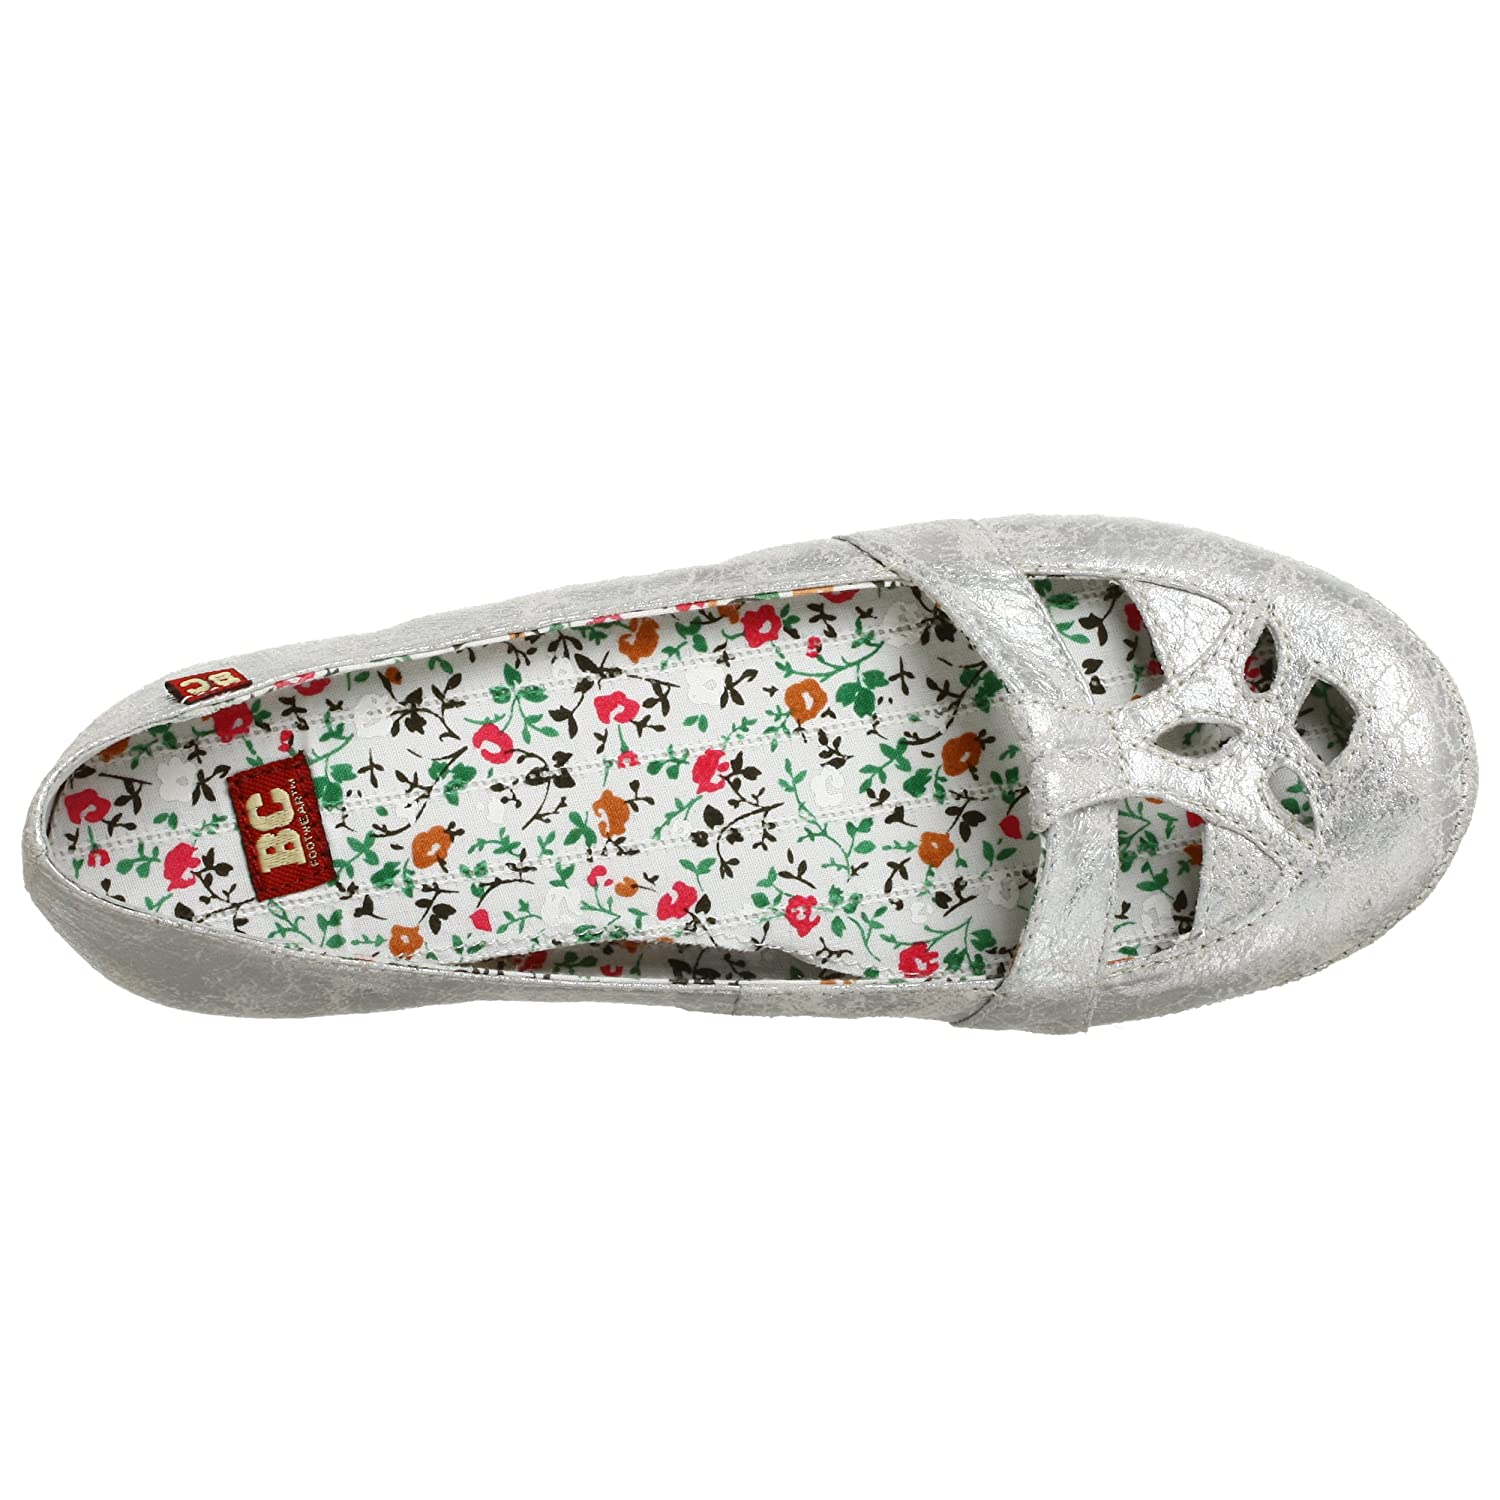 BC Footwear Women's Beehive Flat - Free Overnight Shipping & Return Shipping: Endless.com